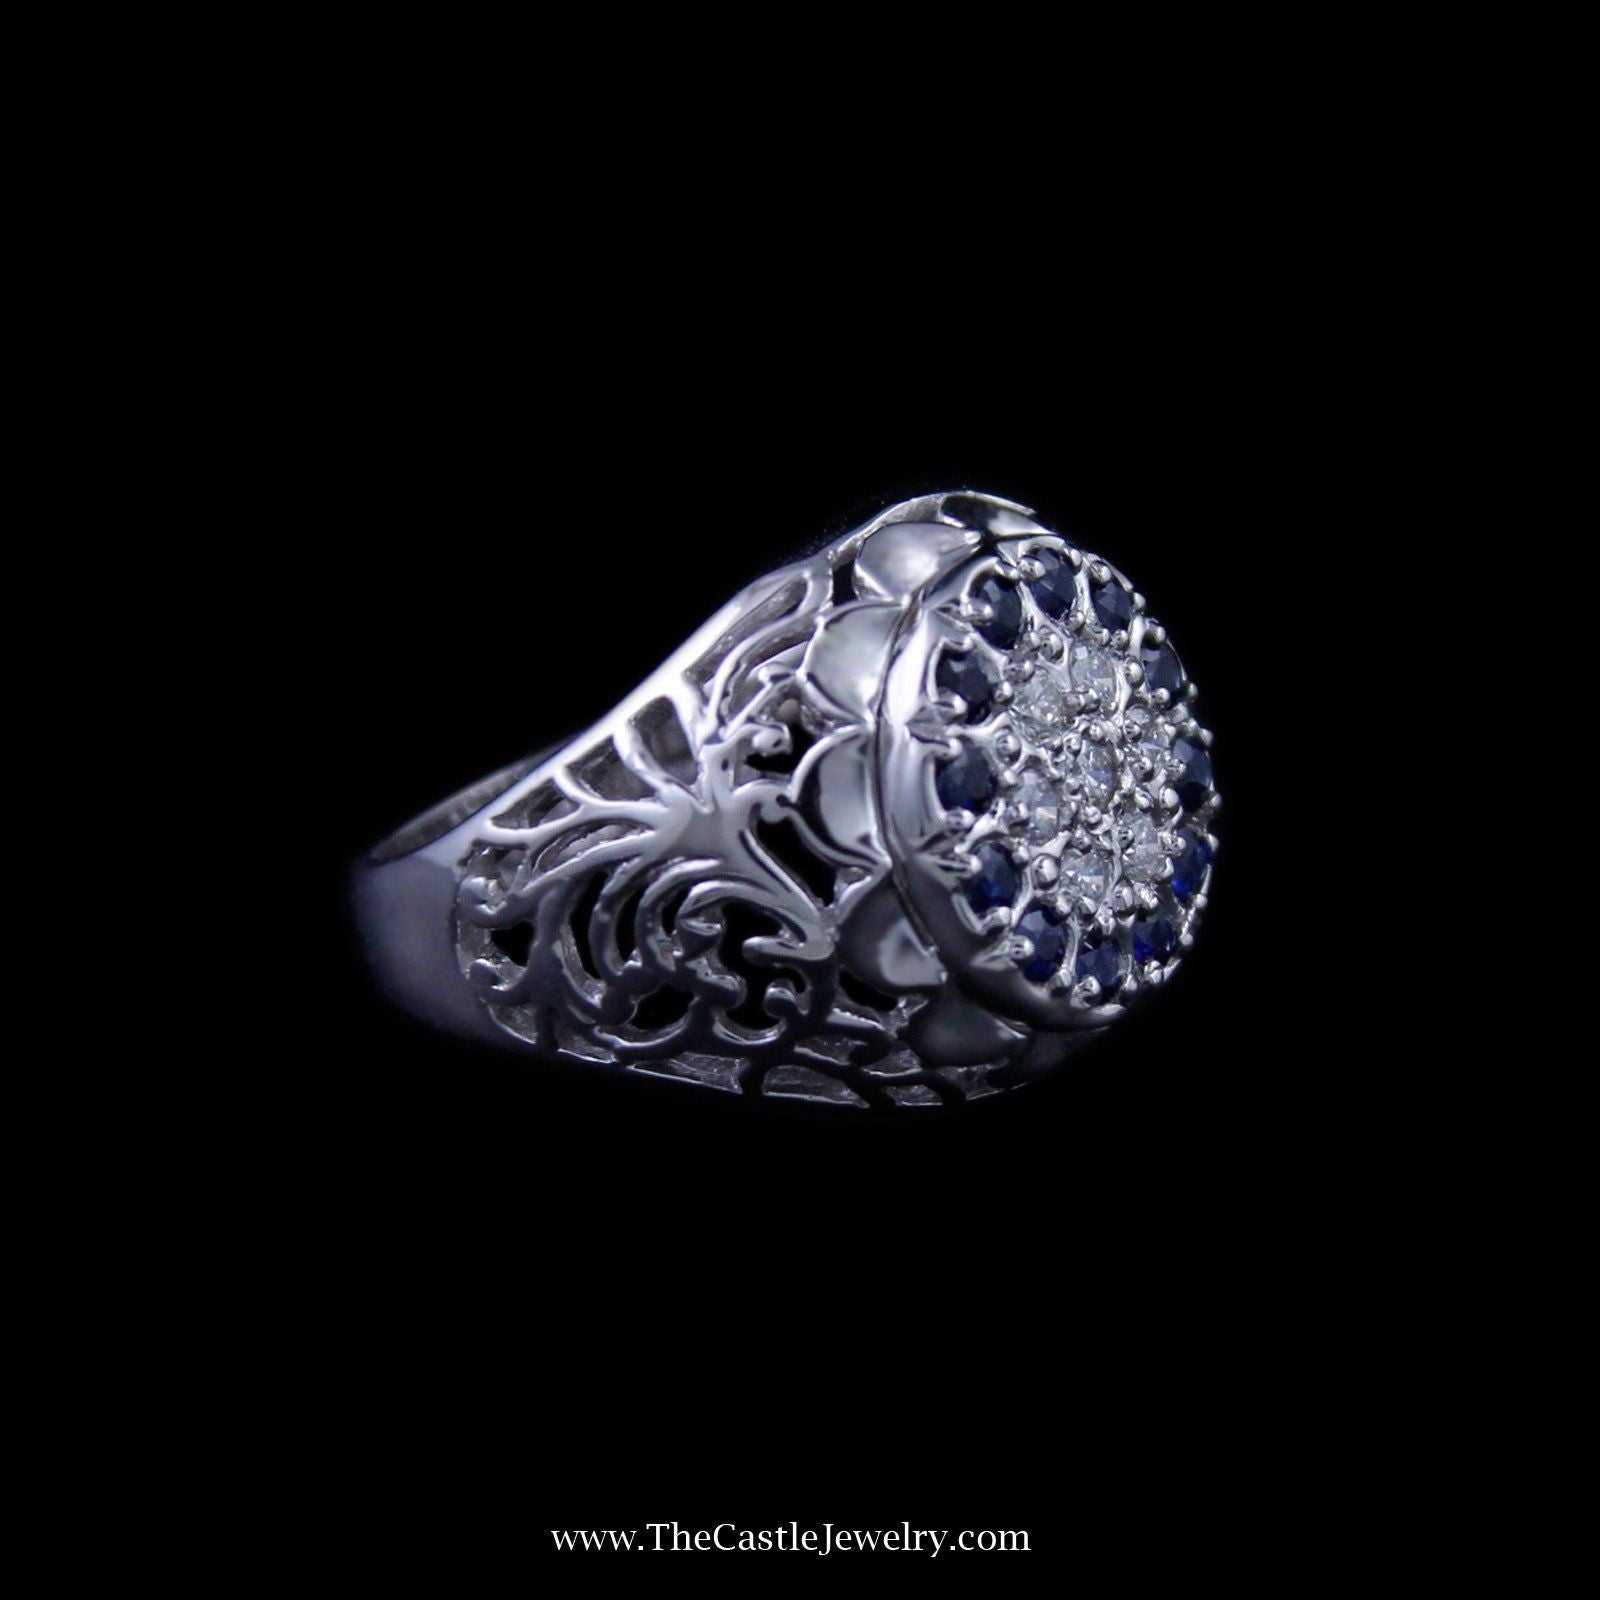 Sapphire and Diamond Kentucky Cluster Ring w/ Filigree in 10K White Gold-2